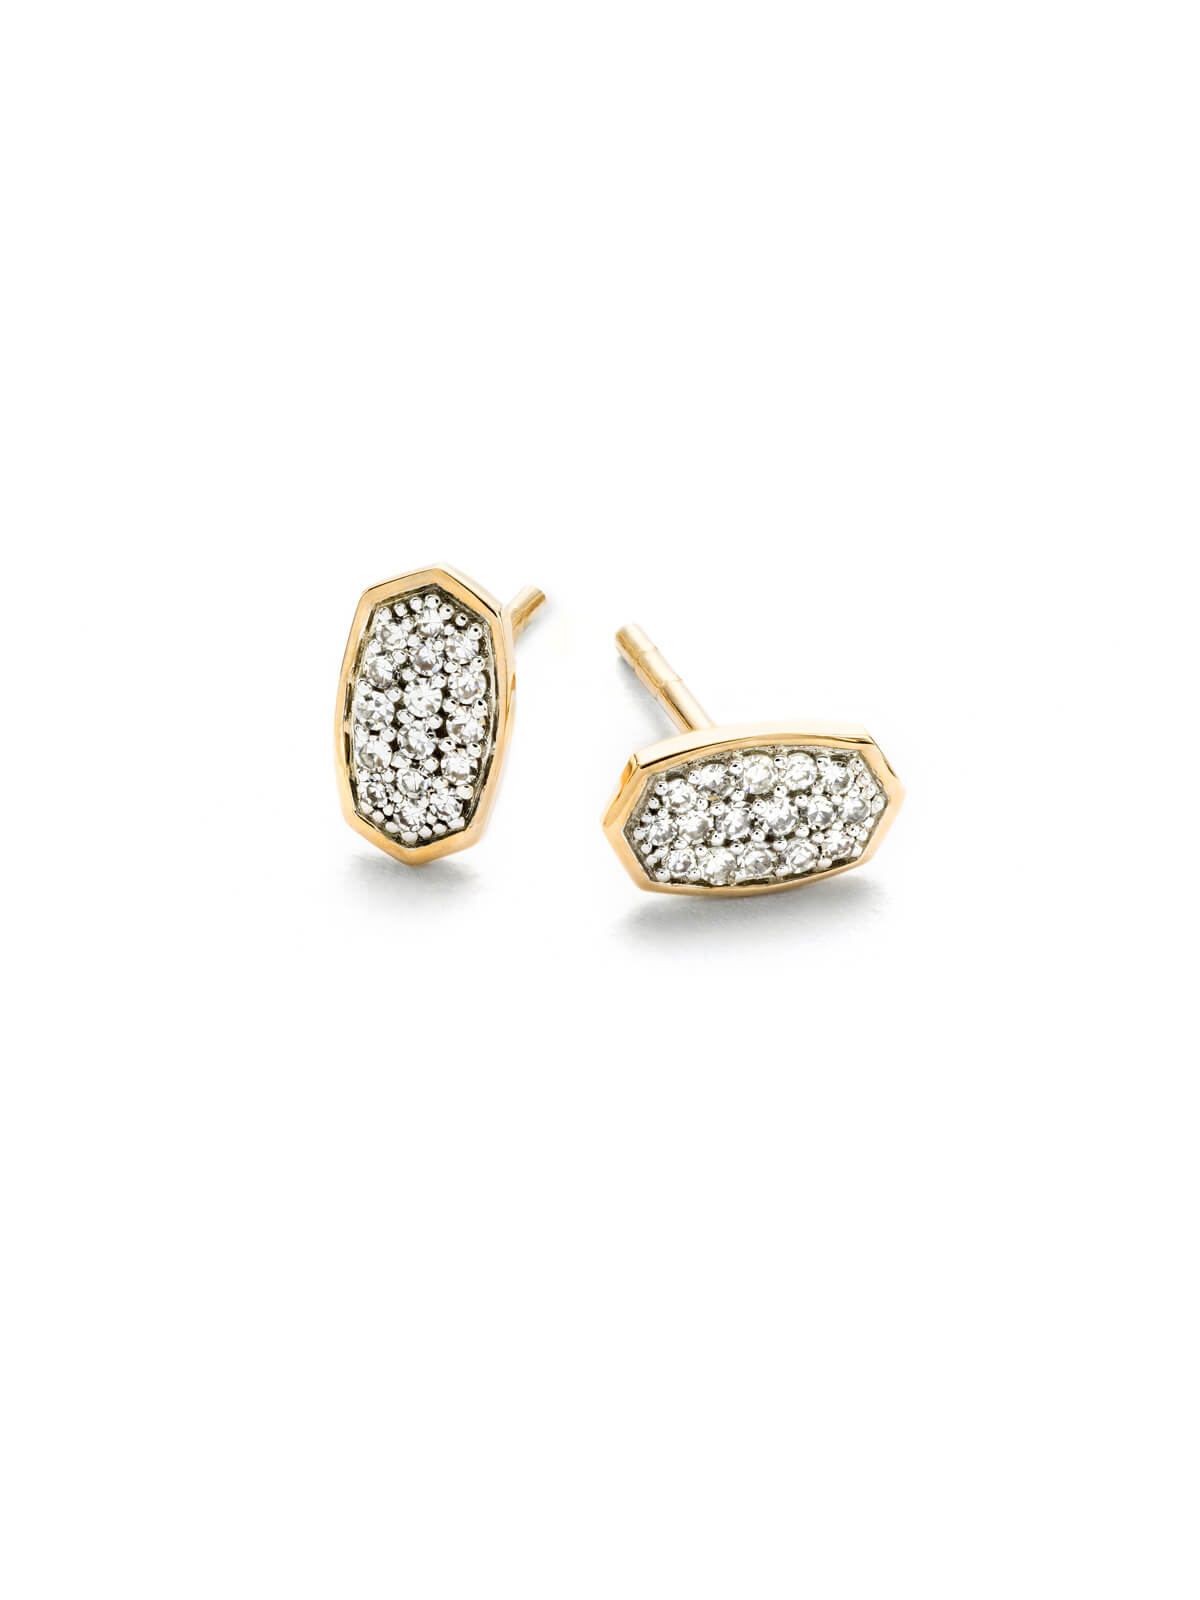 Gypsy Stud Earrings in White Diamond and 14k Yellow Gold